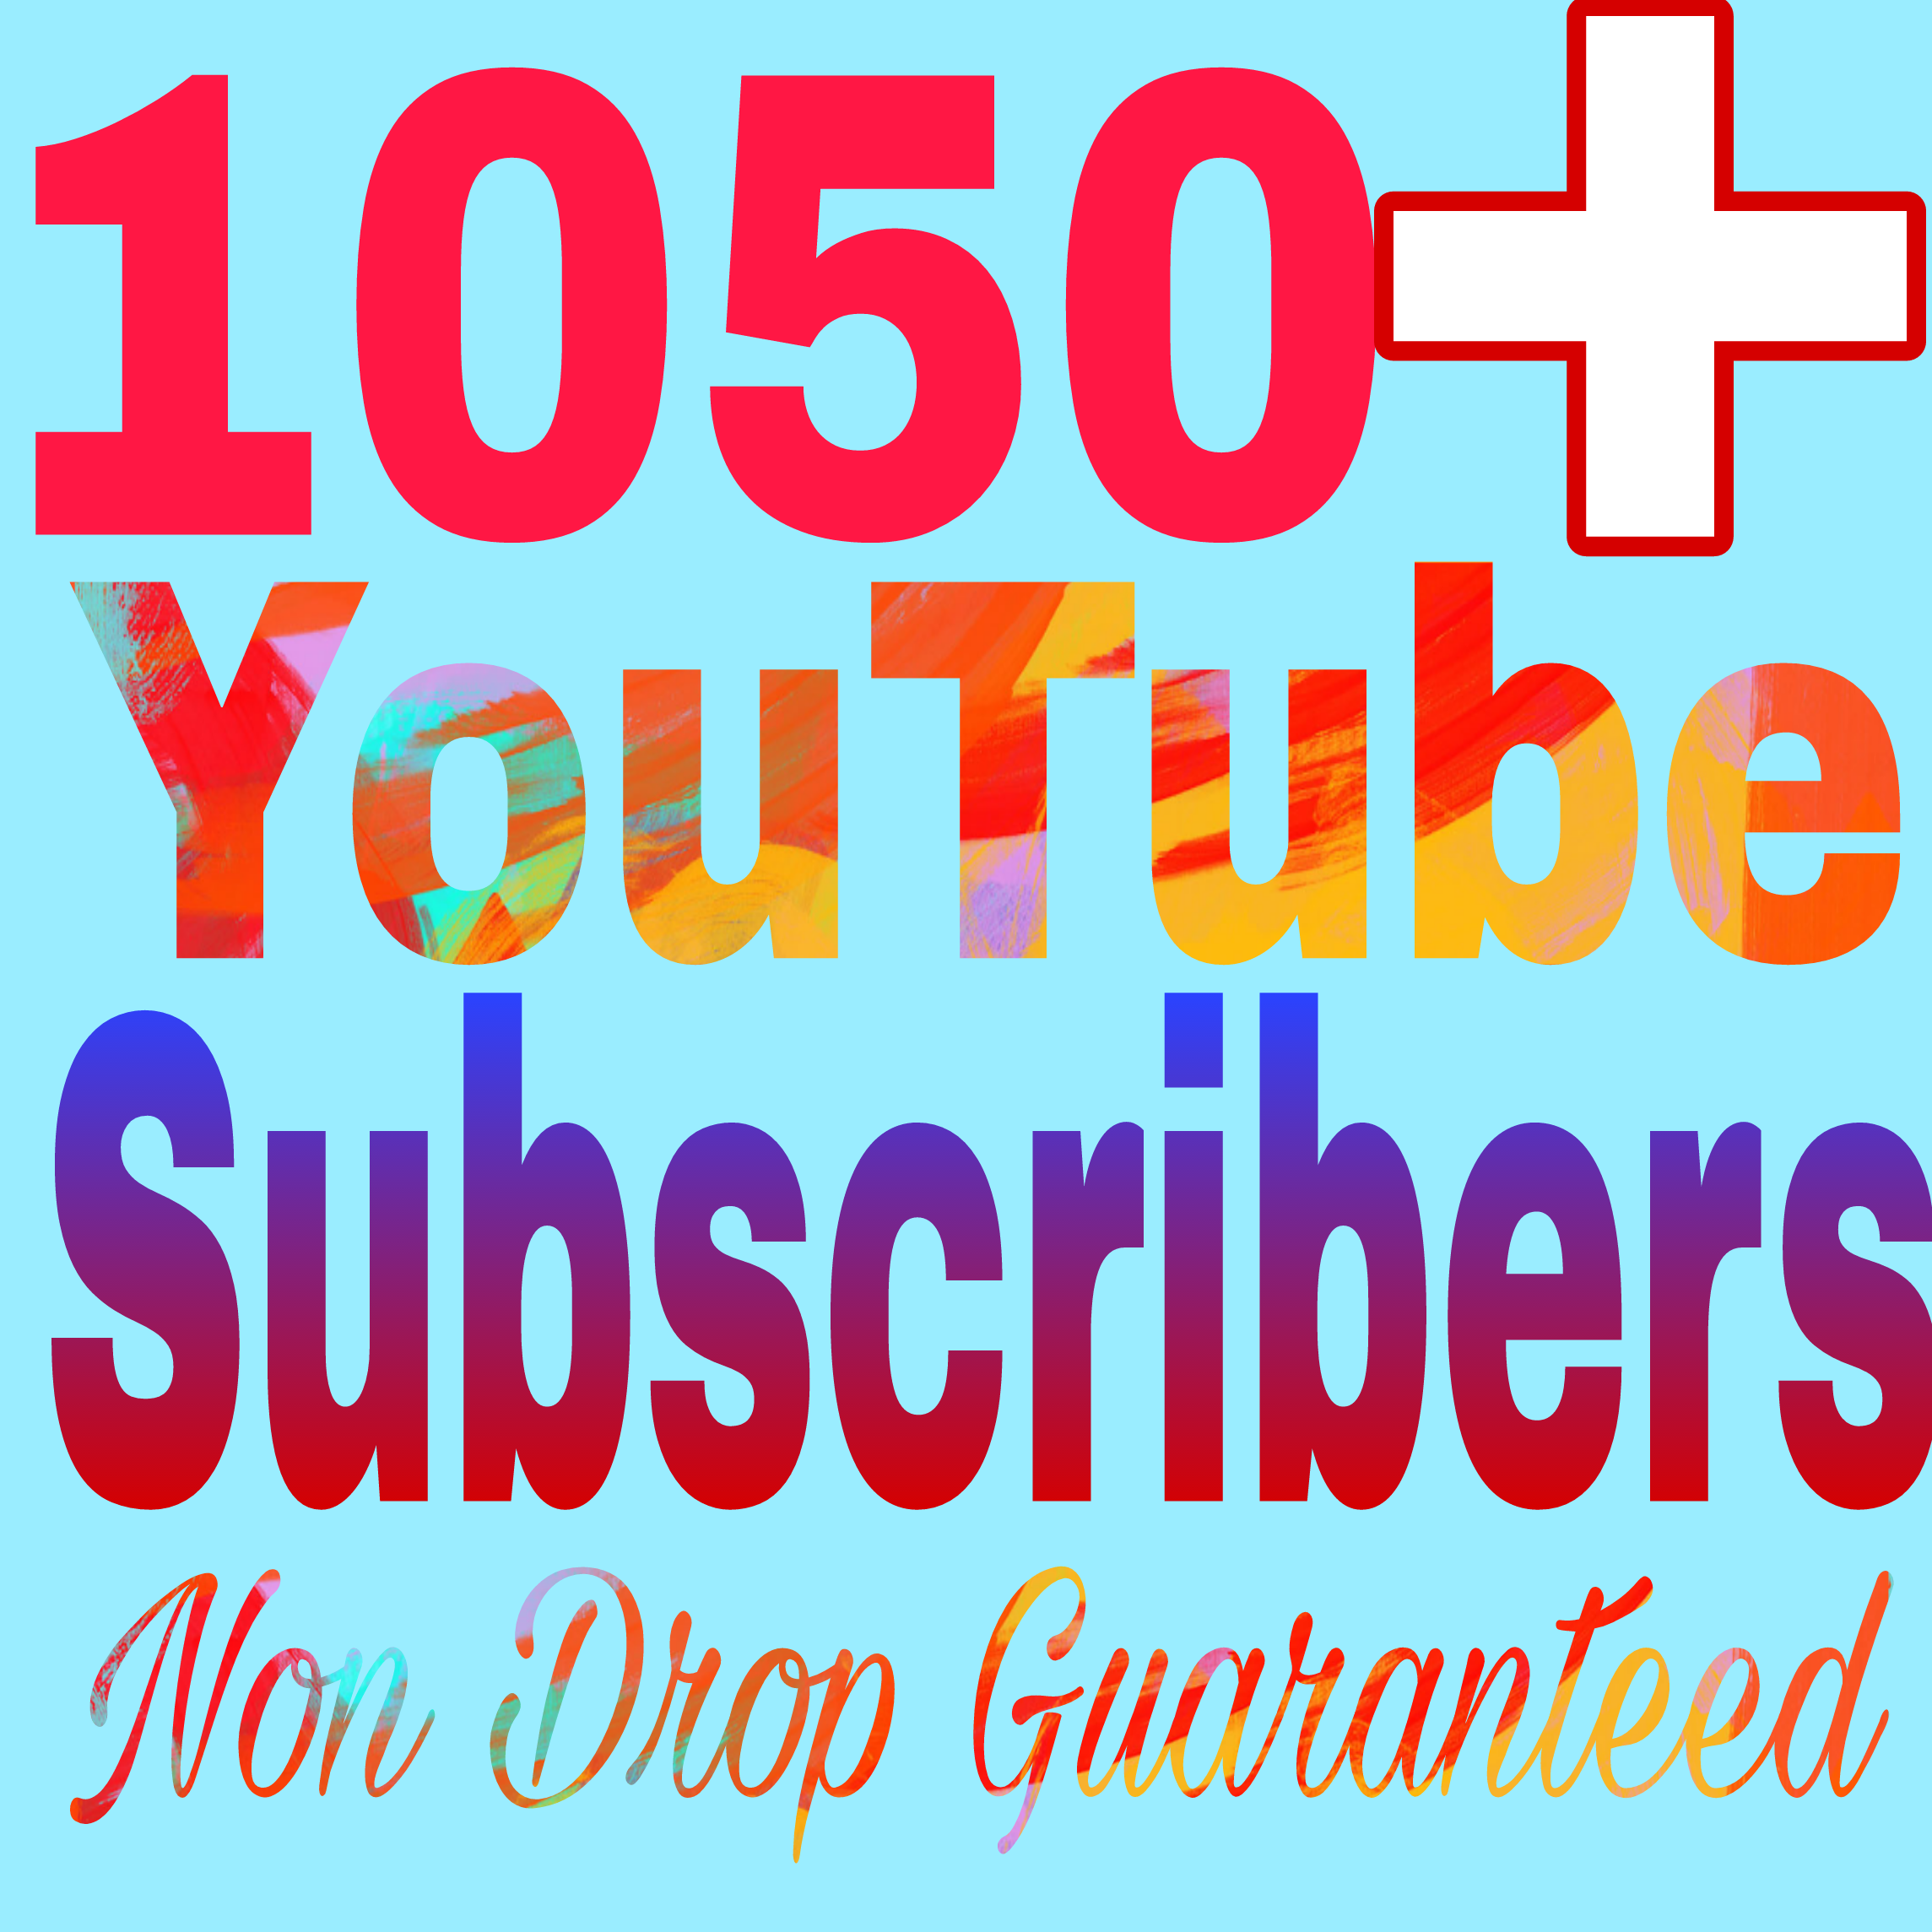 Special offer 1050+ Non Drop channel subscriber very fast delivery within 2-8hours